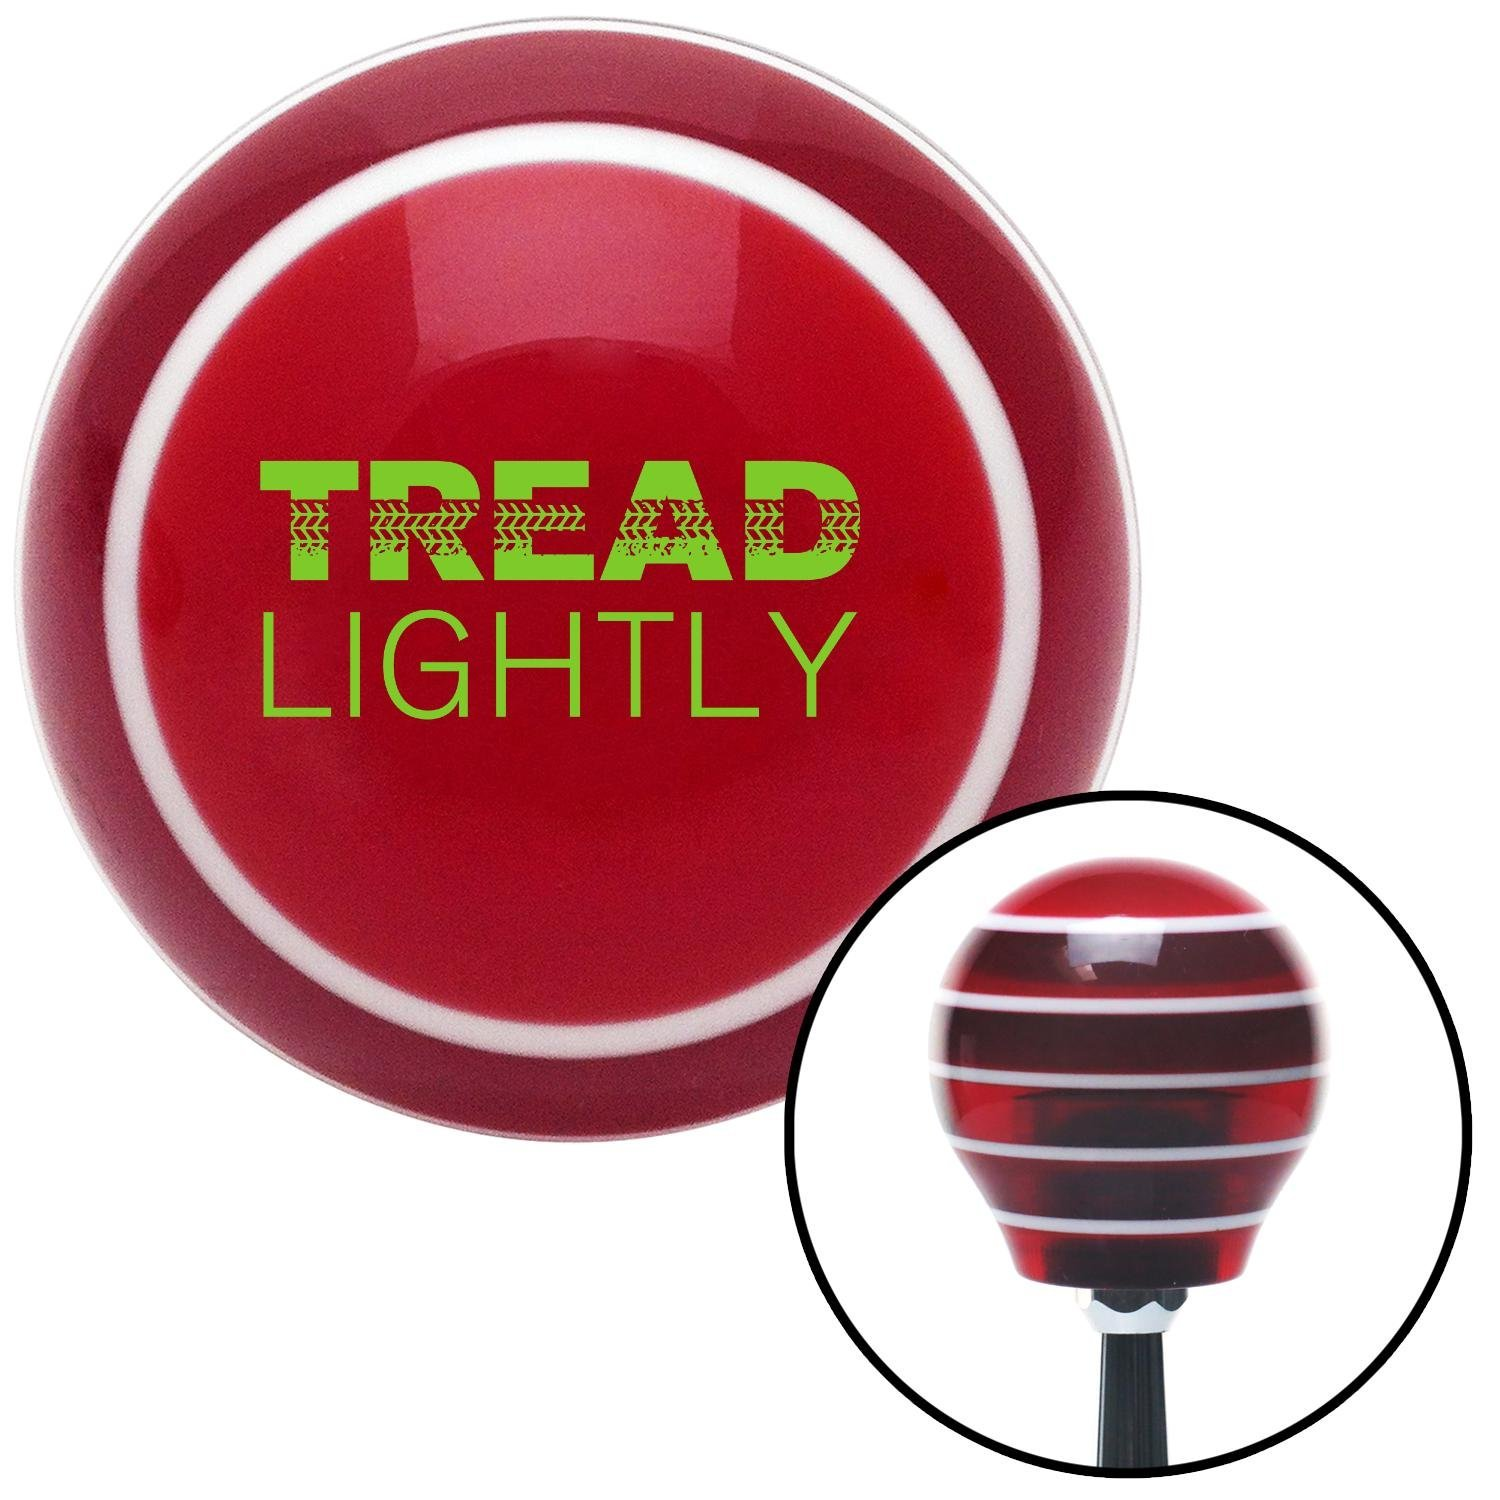 American Shifter 119854 Red Stripe Shift Knob with M16 x 1.5 Insert Green Tread Lightly